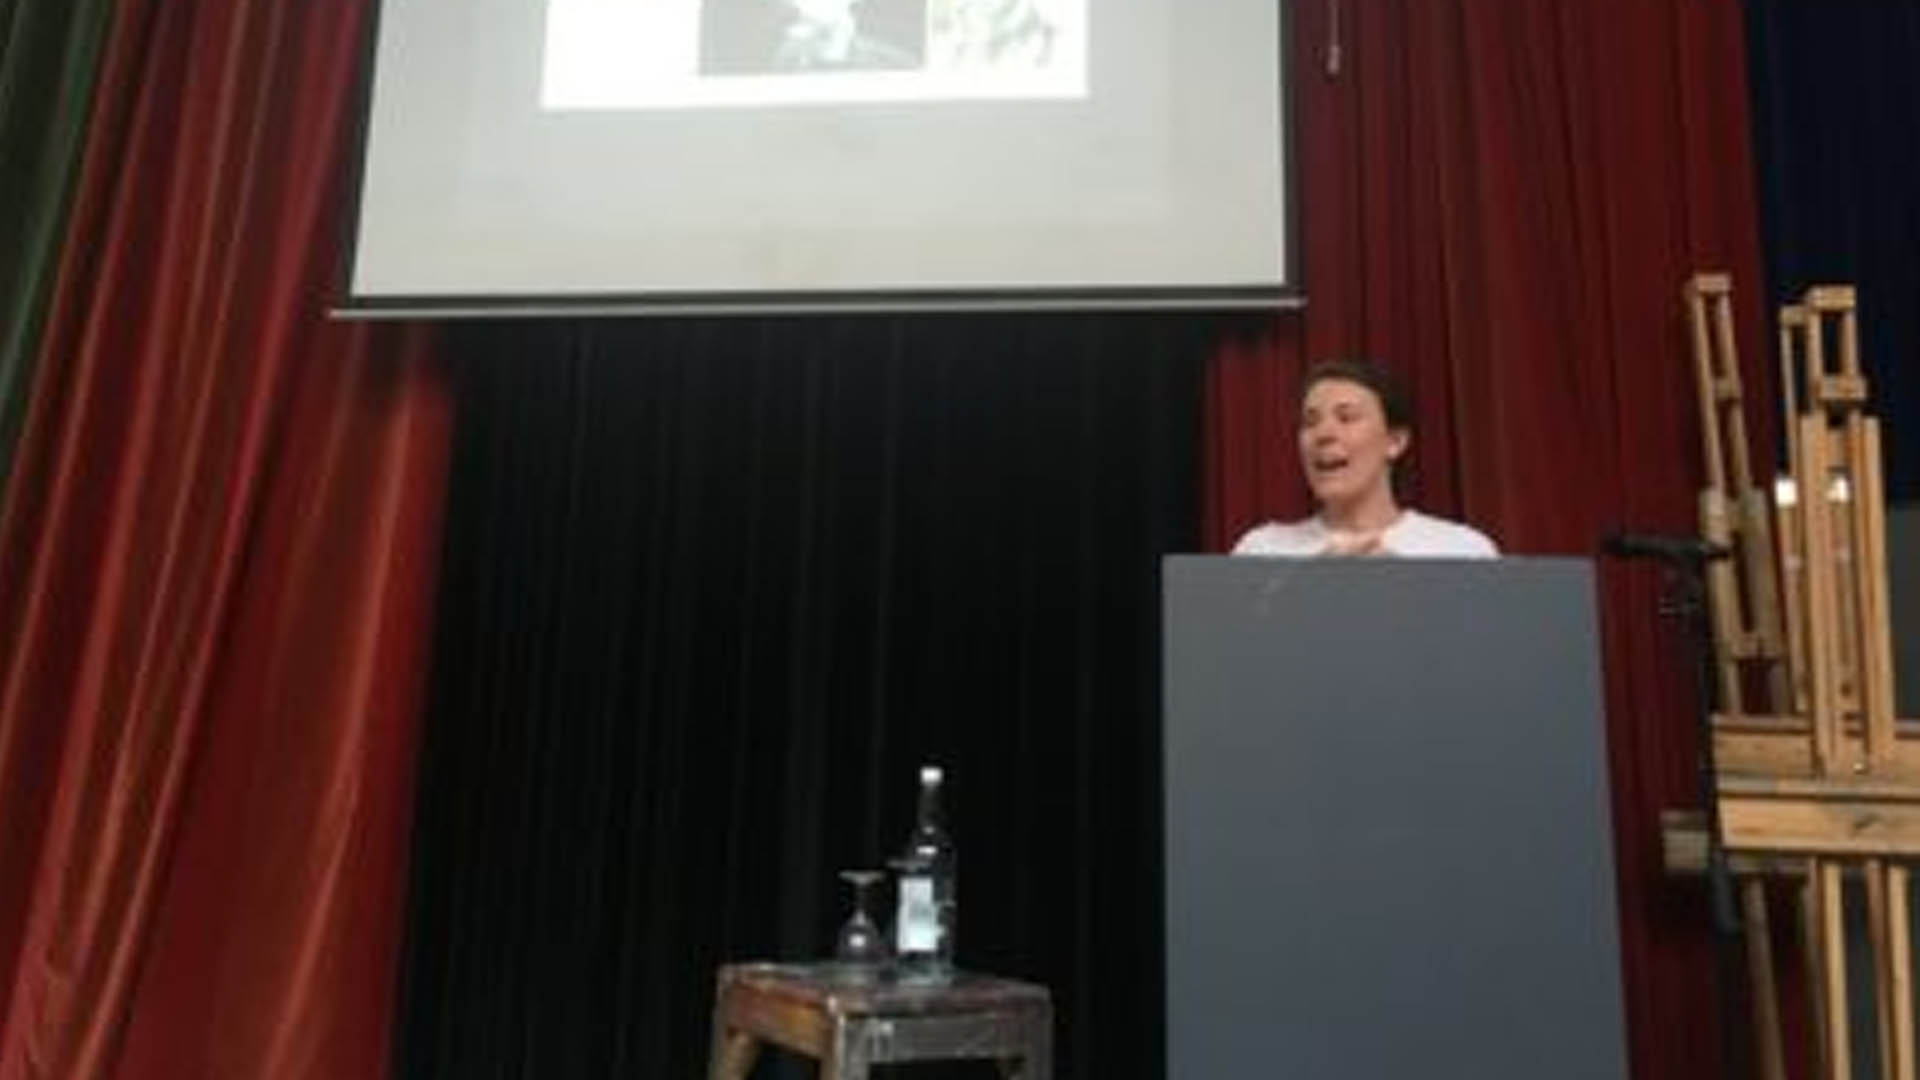 Lillian speaking at the Royal Academy of Arts in London